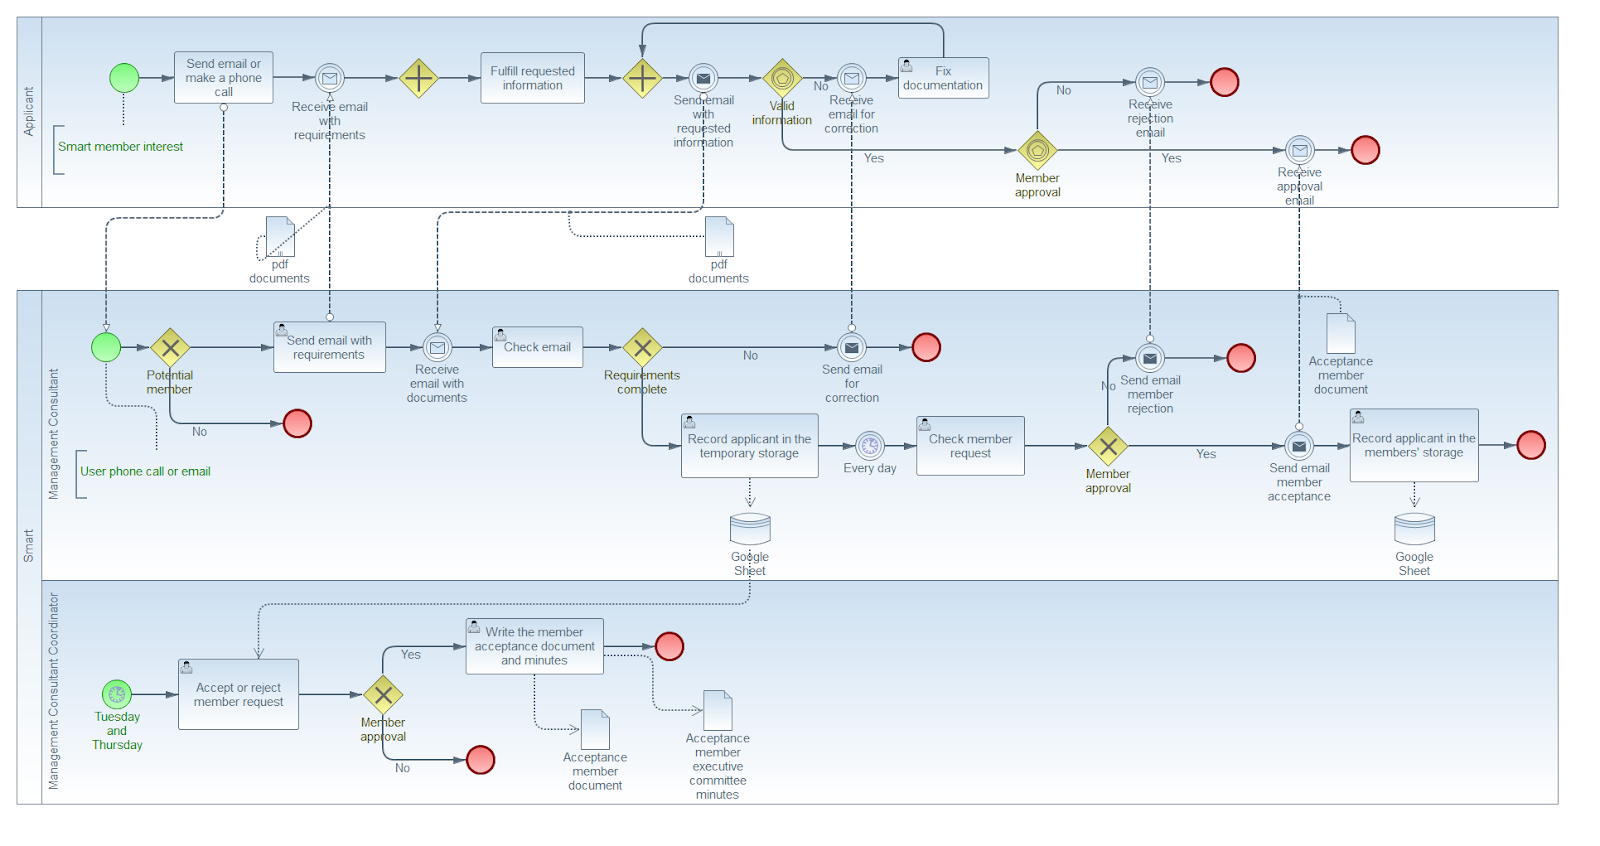 BPMN diagram representing the business process of adding a new member to Smart